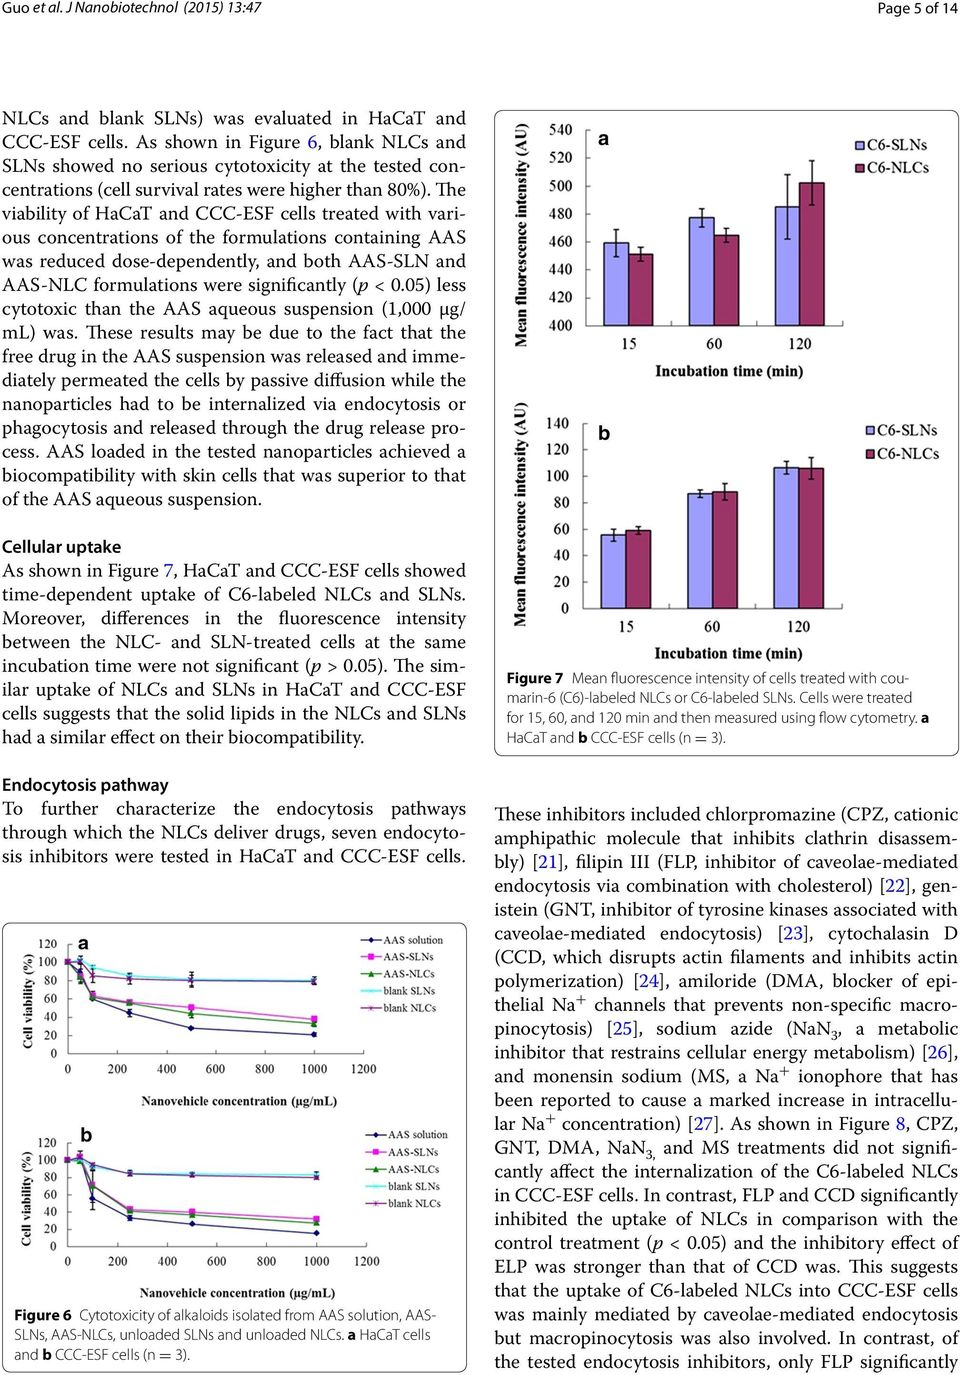 The viability of HaCaT and CCC-ESF cells treated with various concentrations of the formulations containing AAS was reduced dose-dependently, and both AAS-SLN and AAS-NLC formulations were